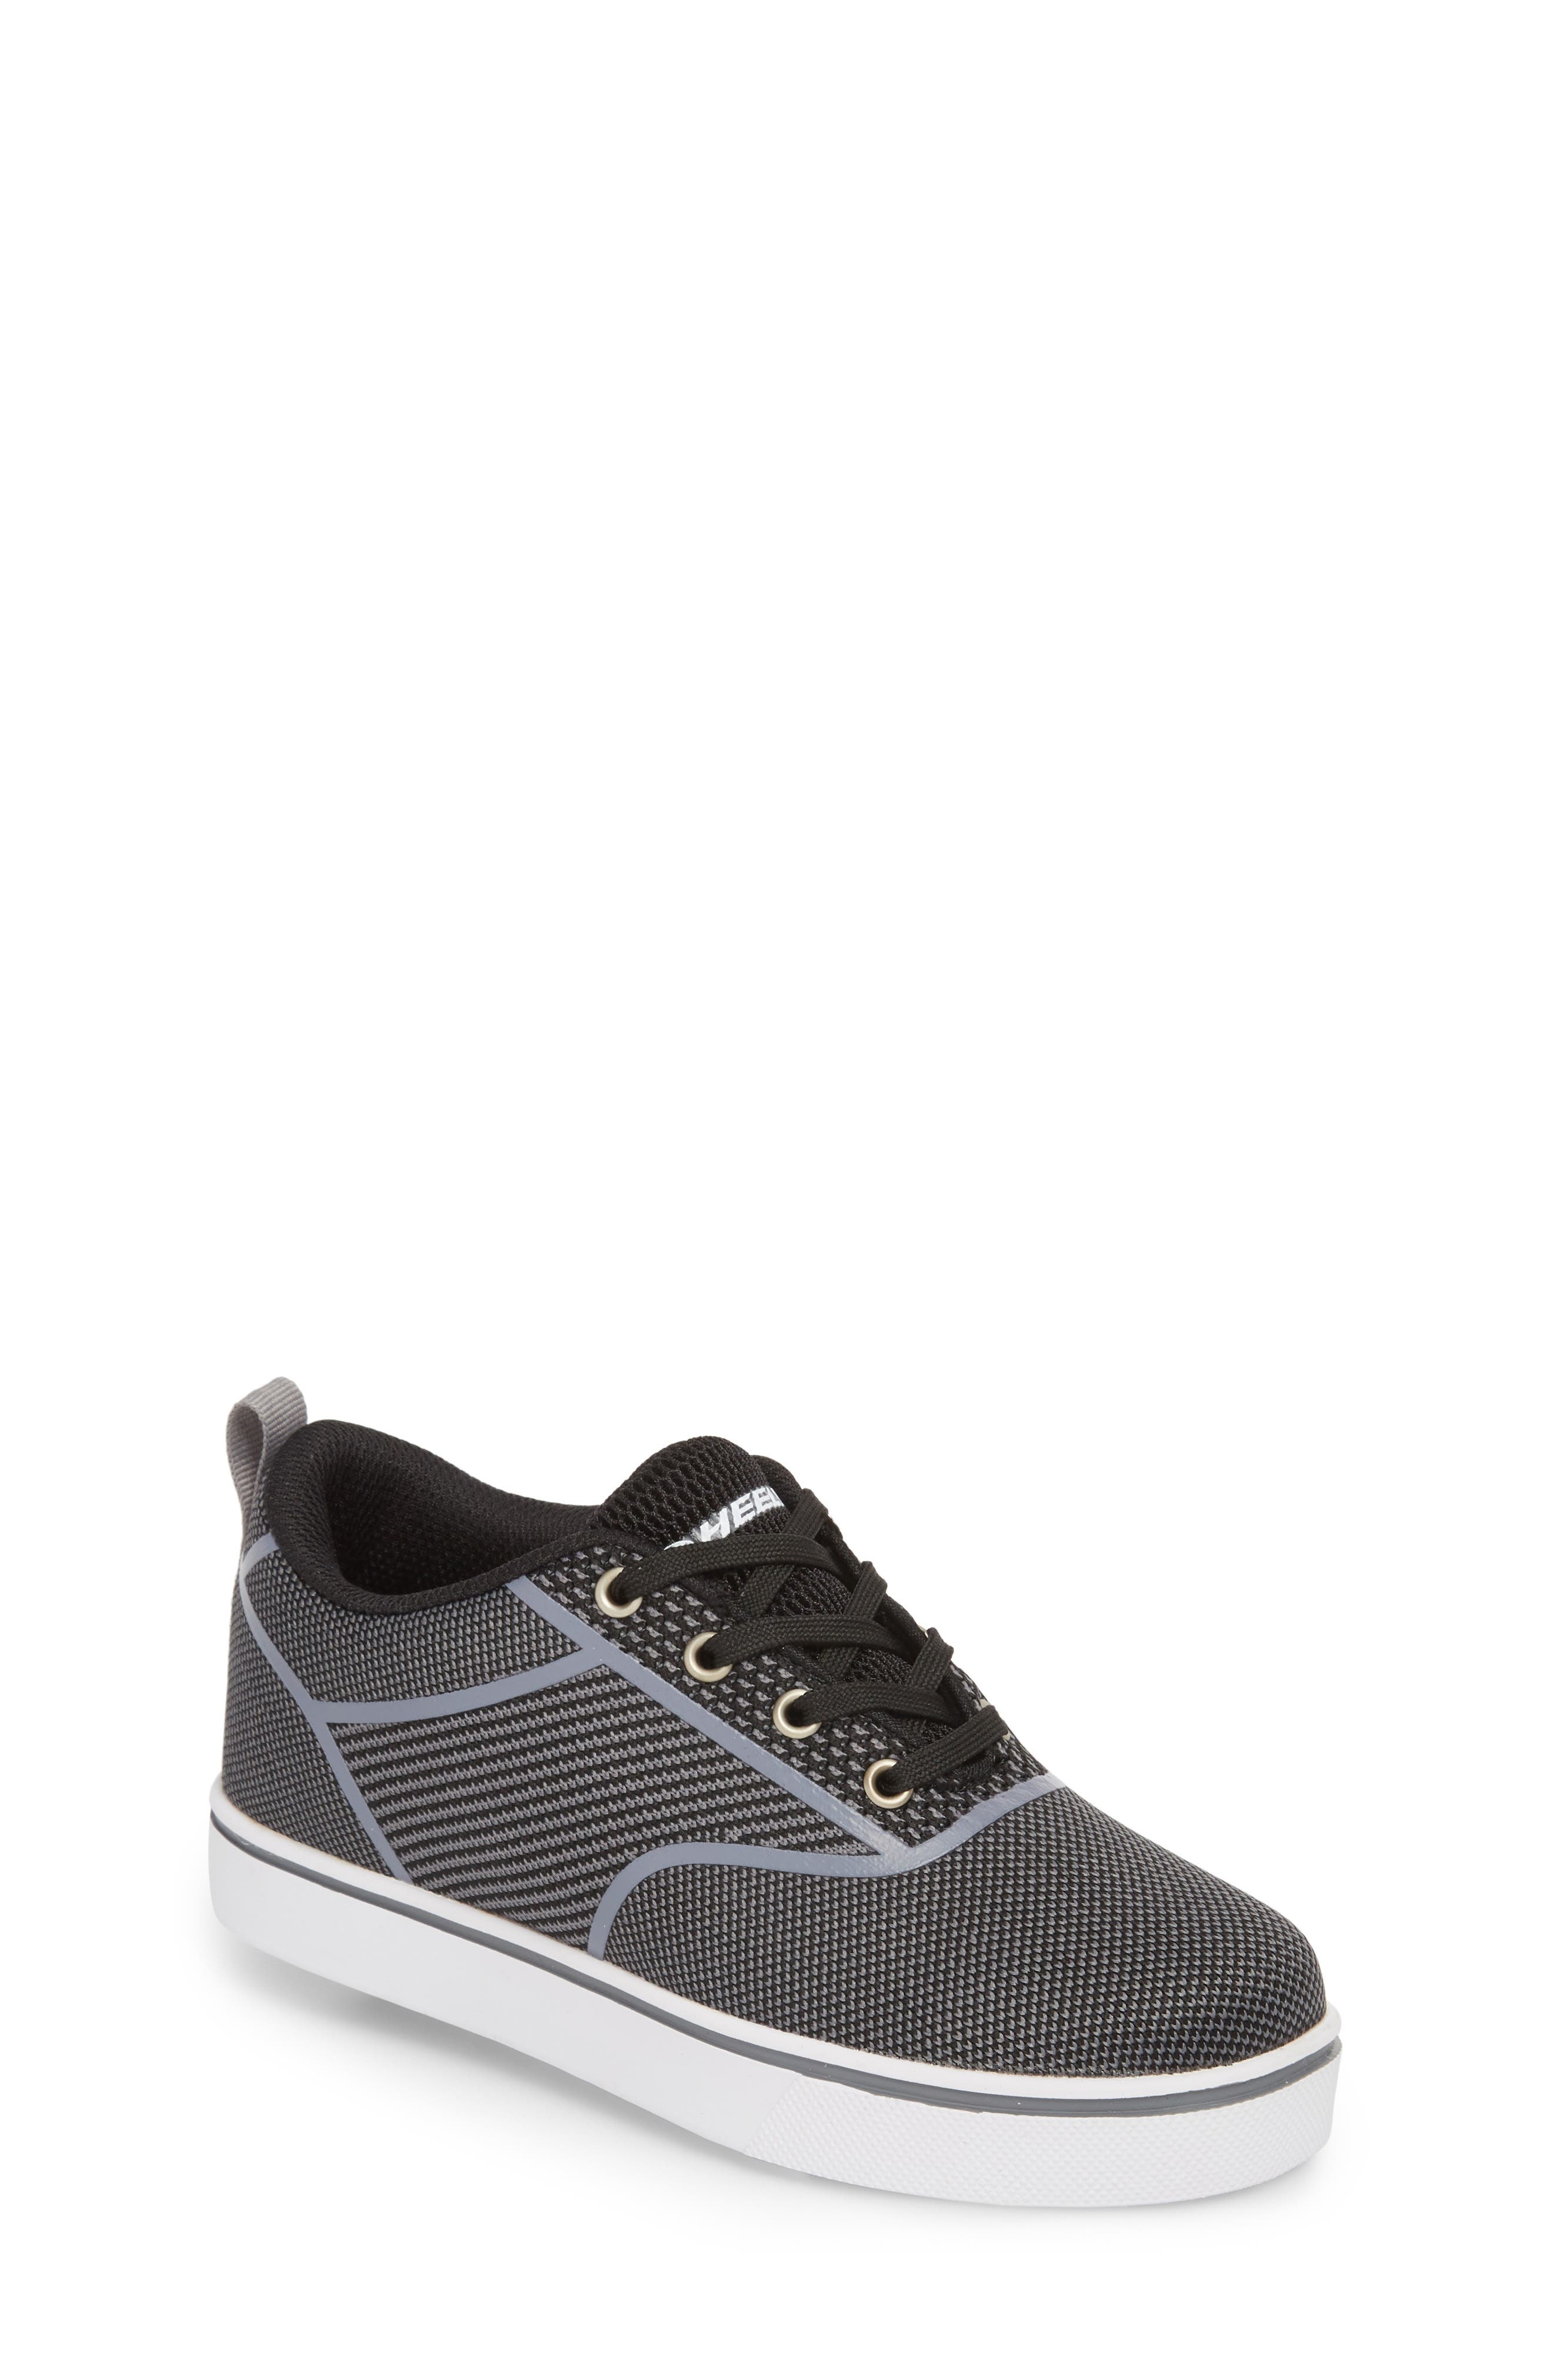 Launch Knit Sneaker,                         Main,                         color, BLACK/ CHARCOAL